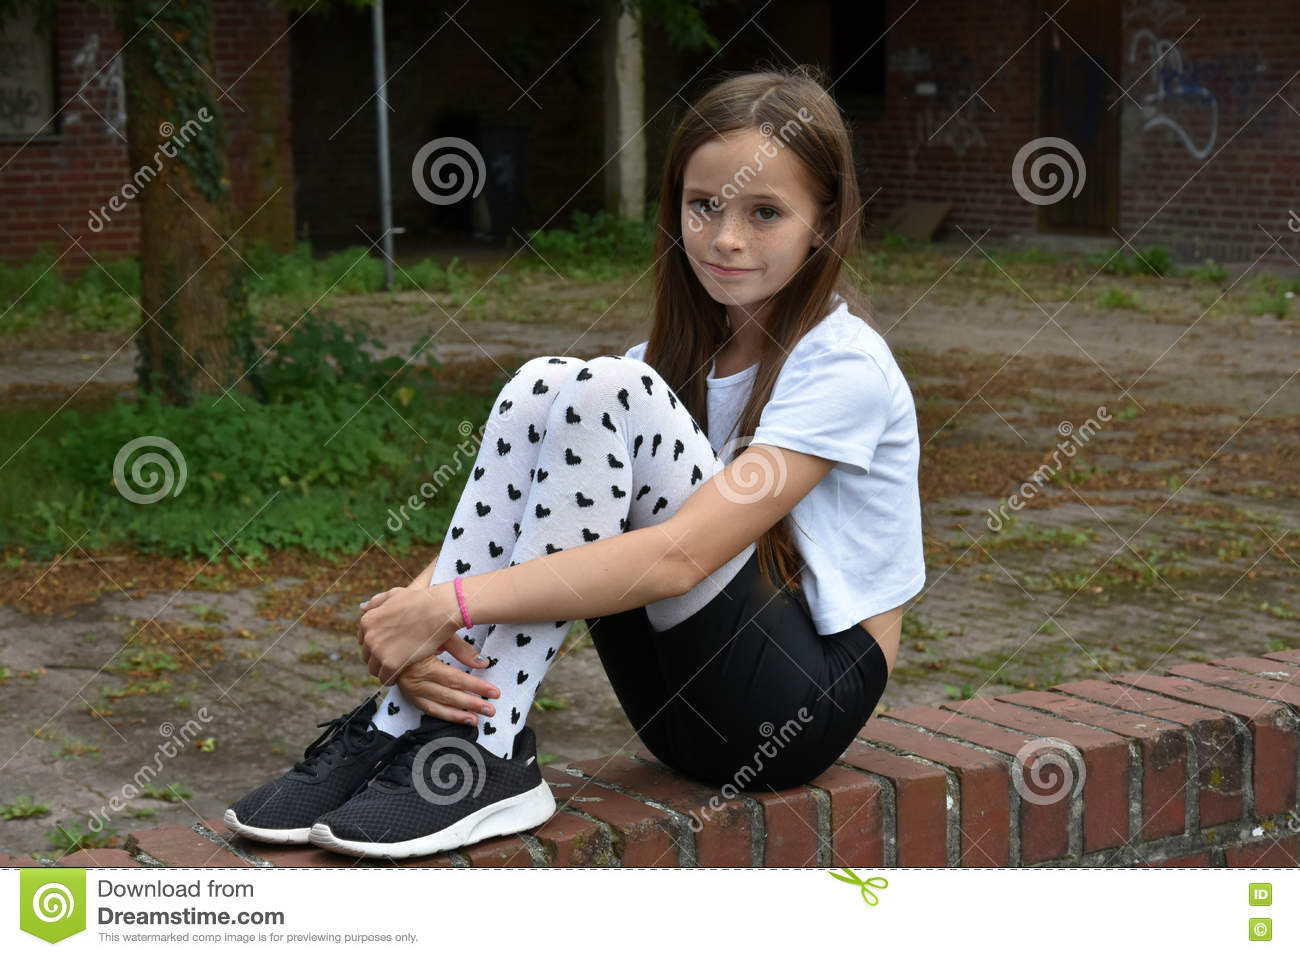 04ae72748 Girl With Fancy Pair Of Tights Stock Image - Image of good